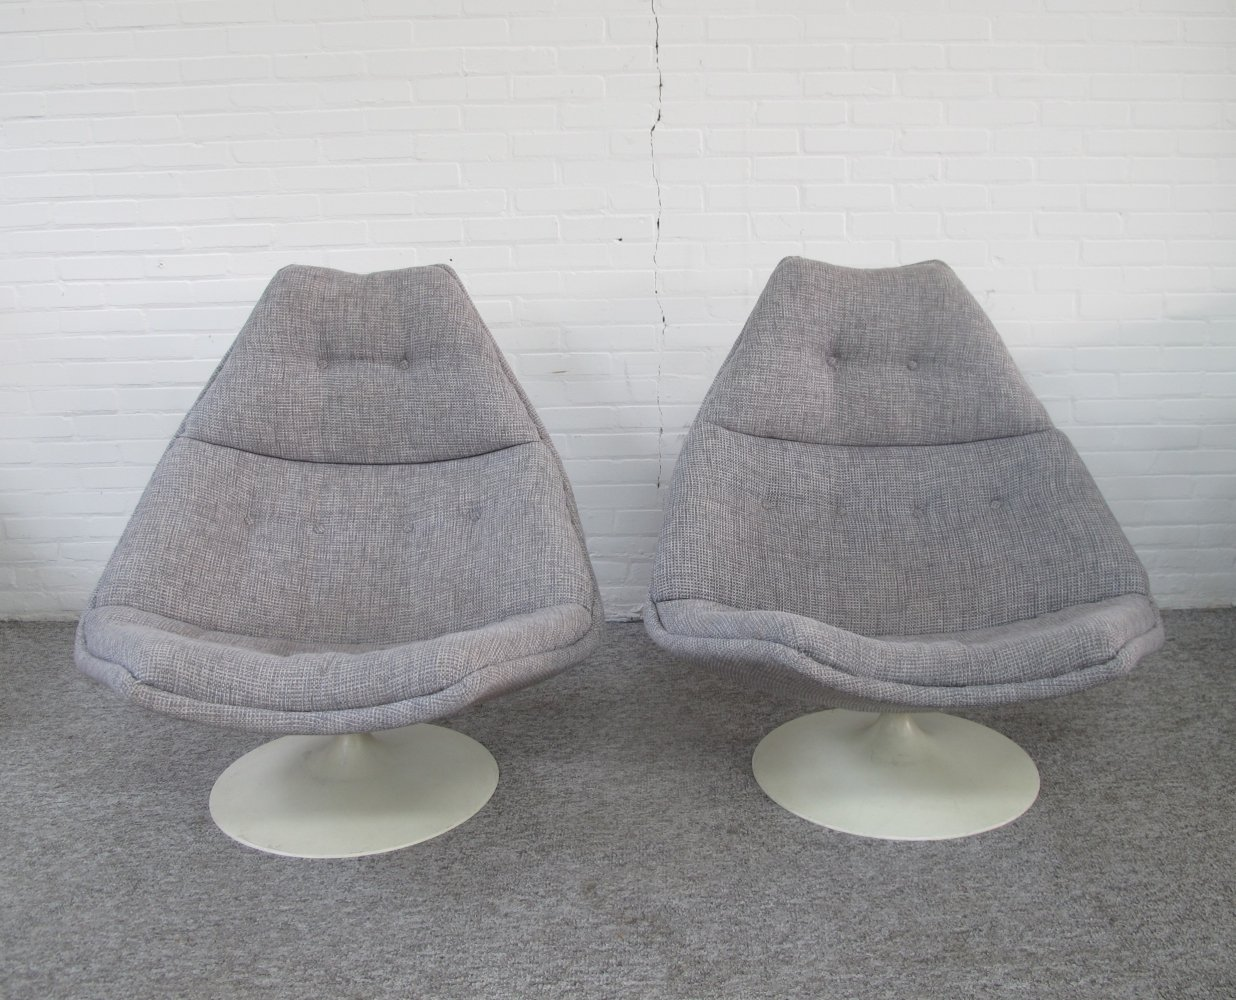 Pair of Vintage model F511 swivel chairs by Geoffrey Harcourt for Artifort